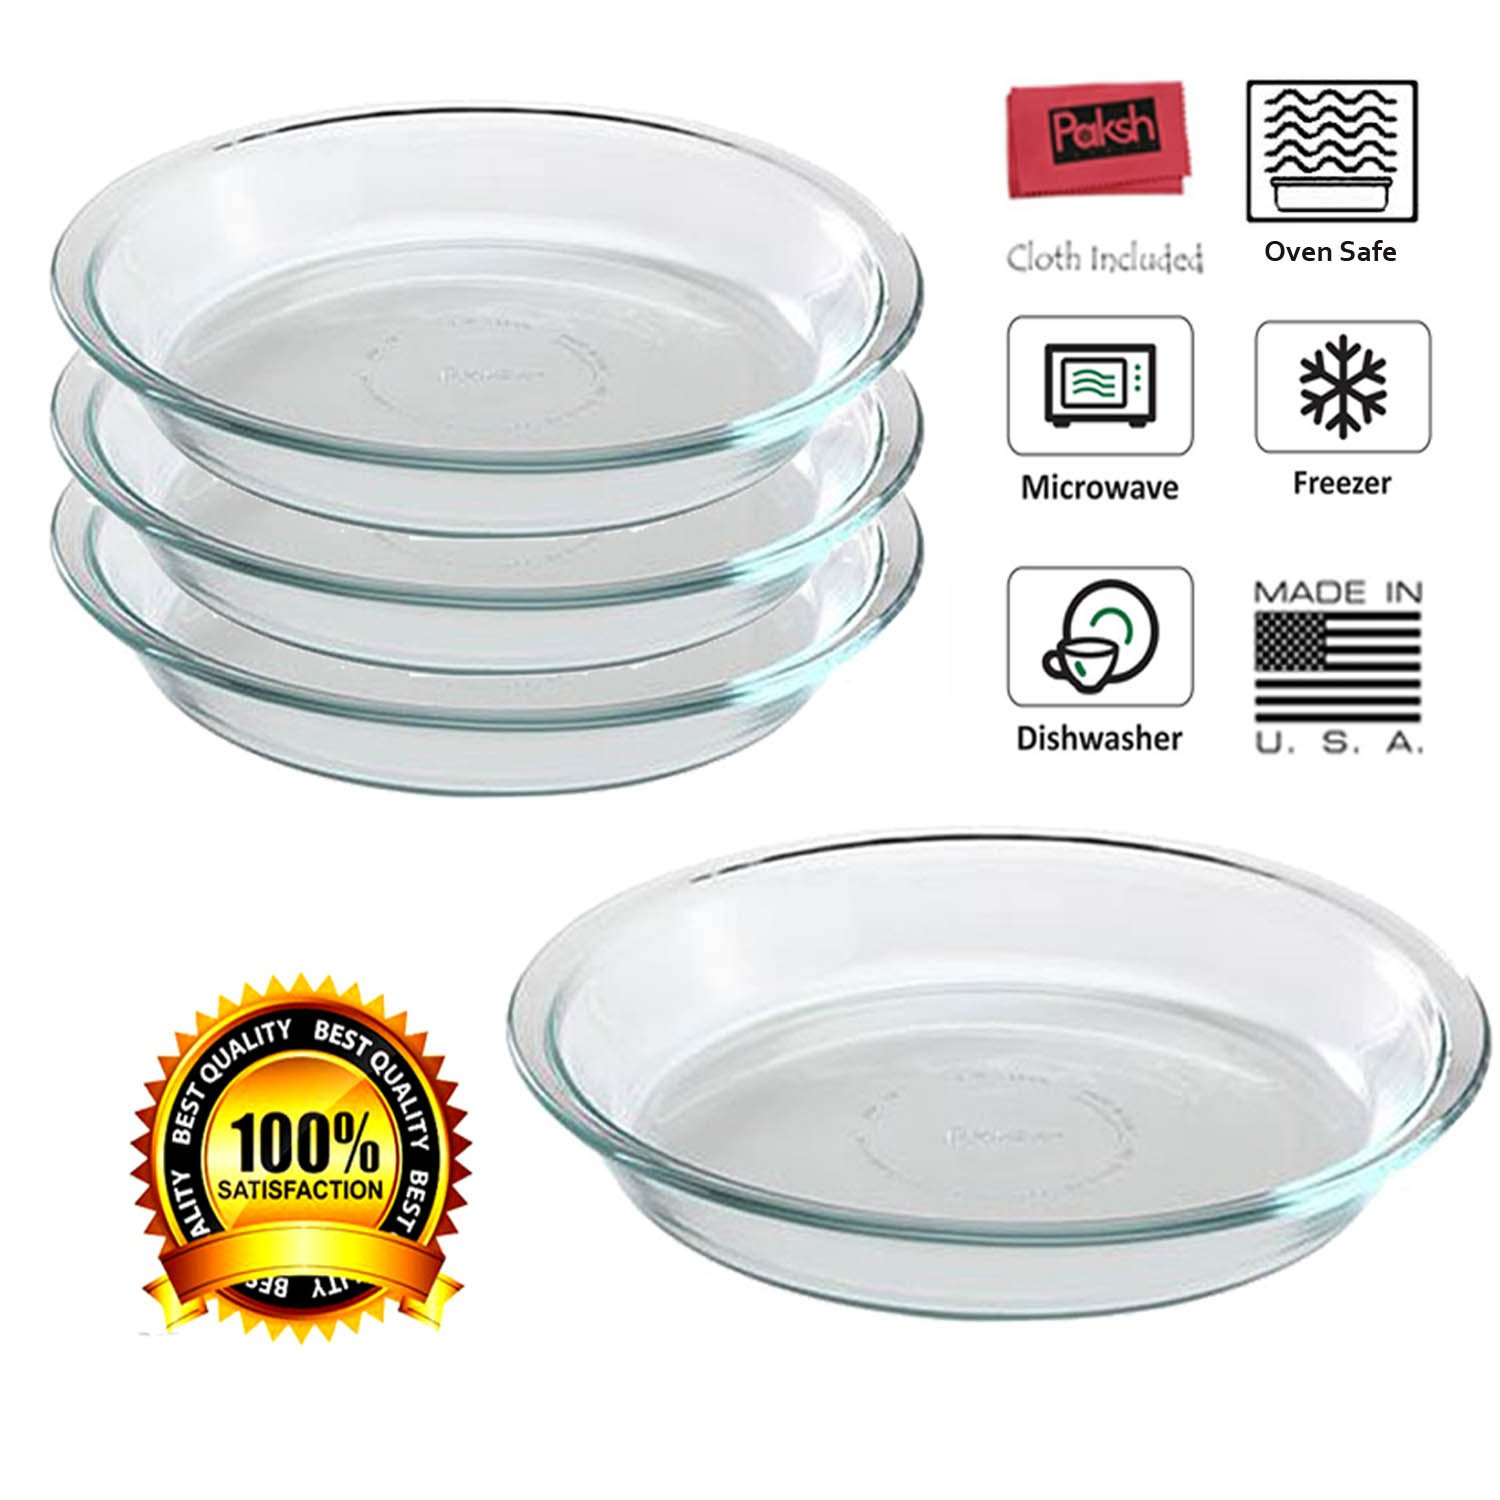 Pyrex/Paksh Glass Bakeware Pie Plate/Dish 9 Inch Round Clear, Microwave, Oven Freezer, Dishwasher Safe (4-Pack)